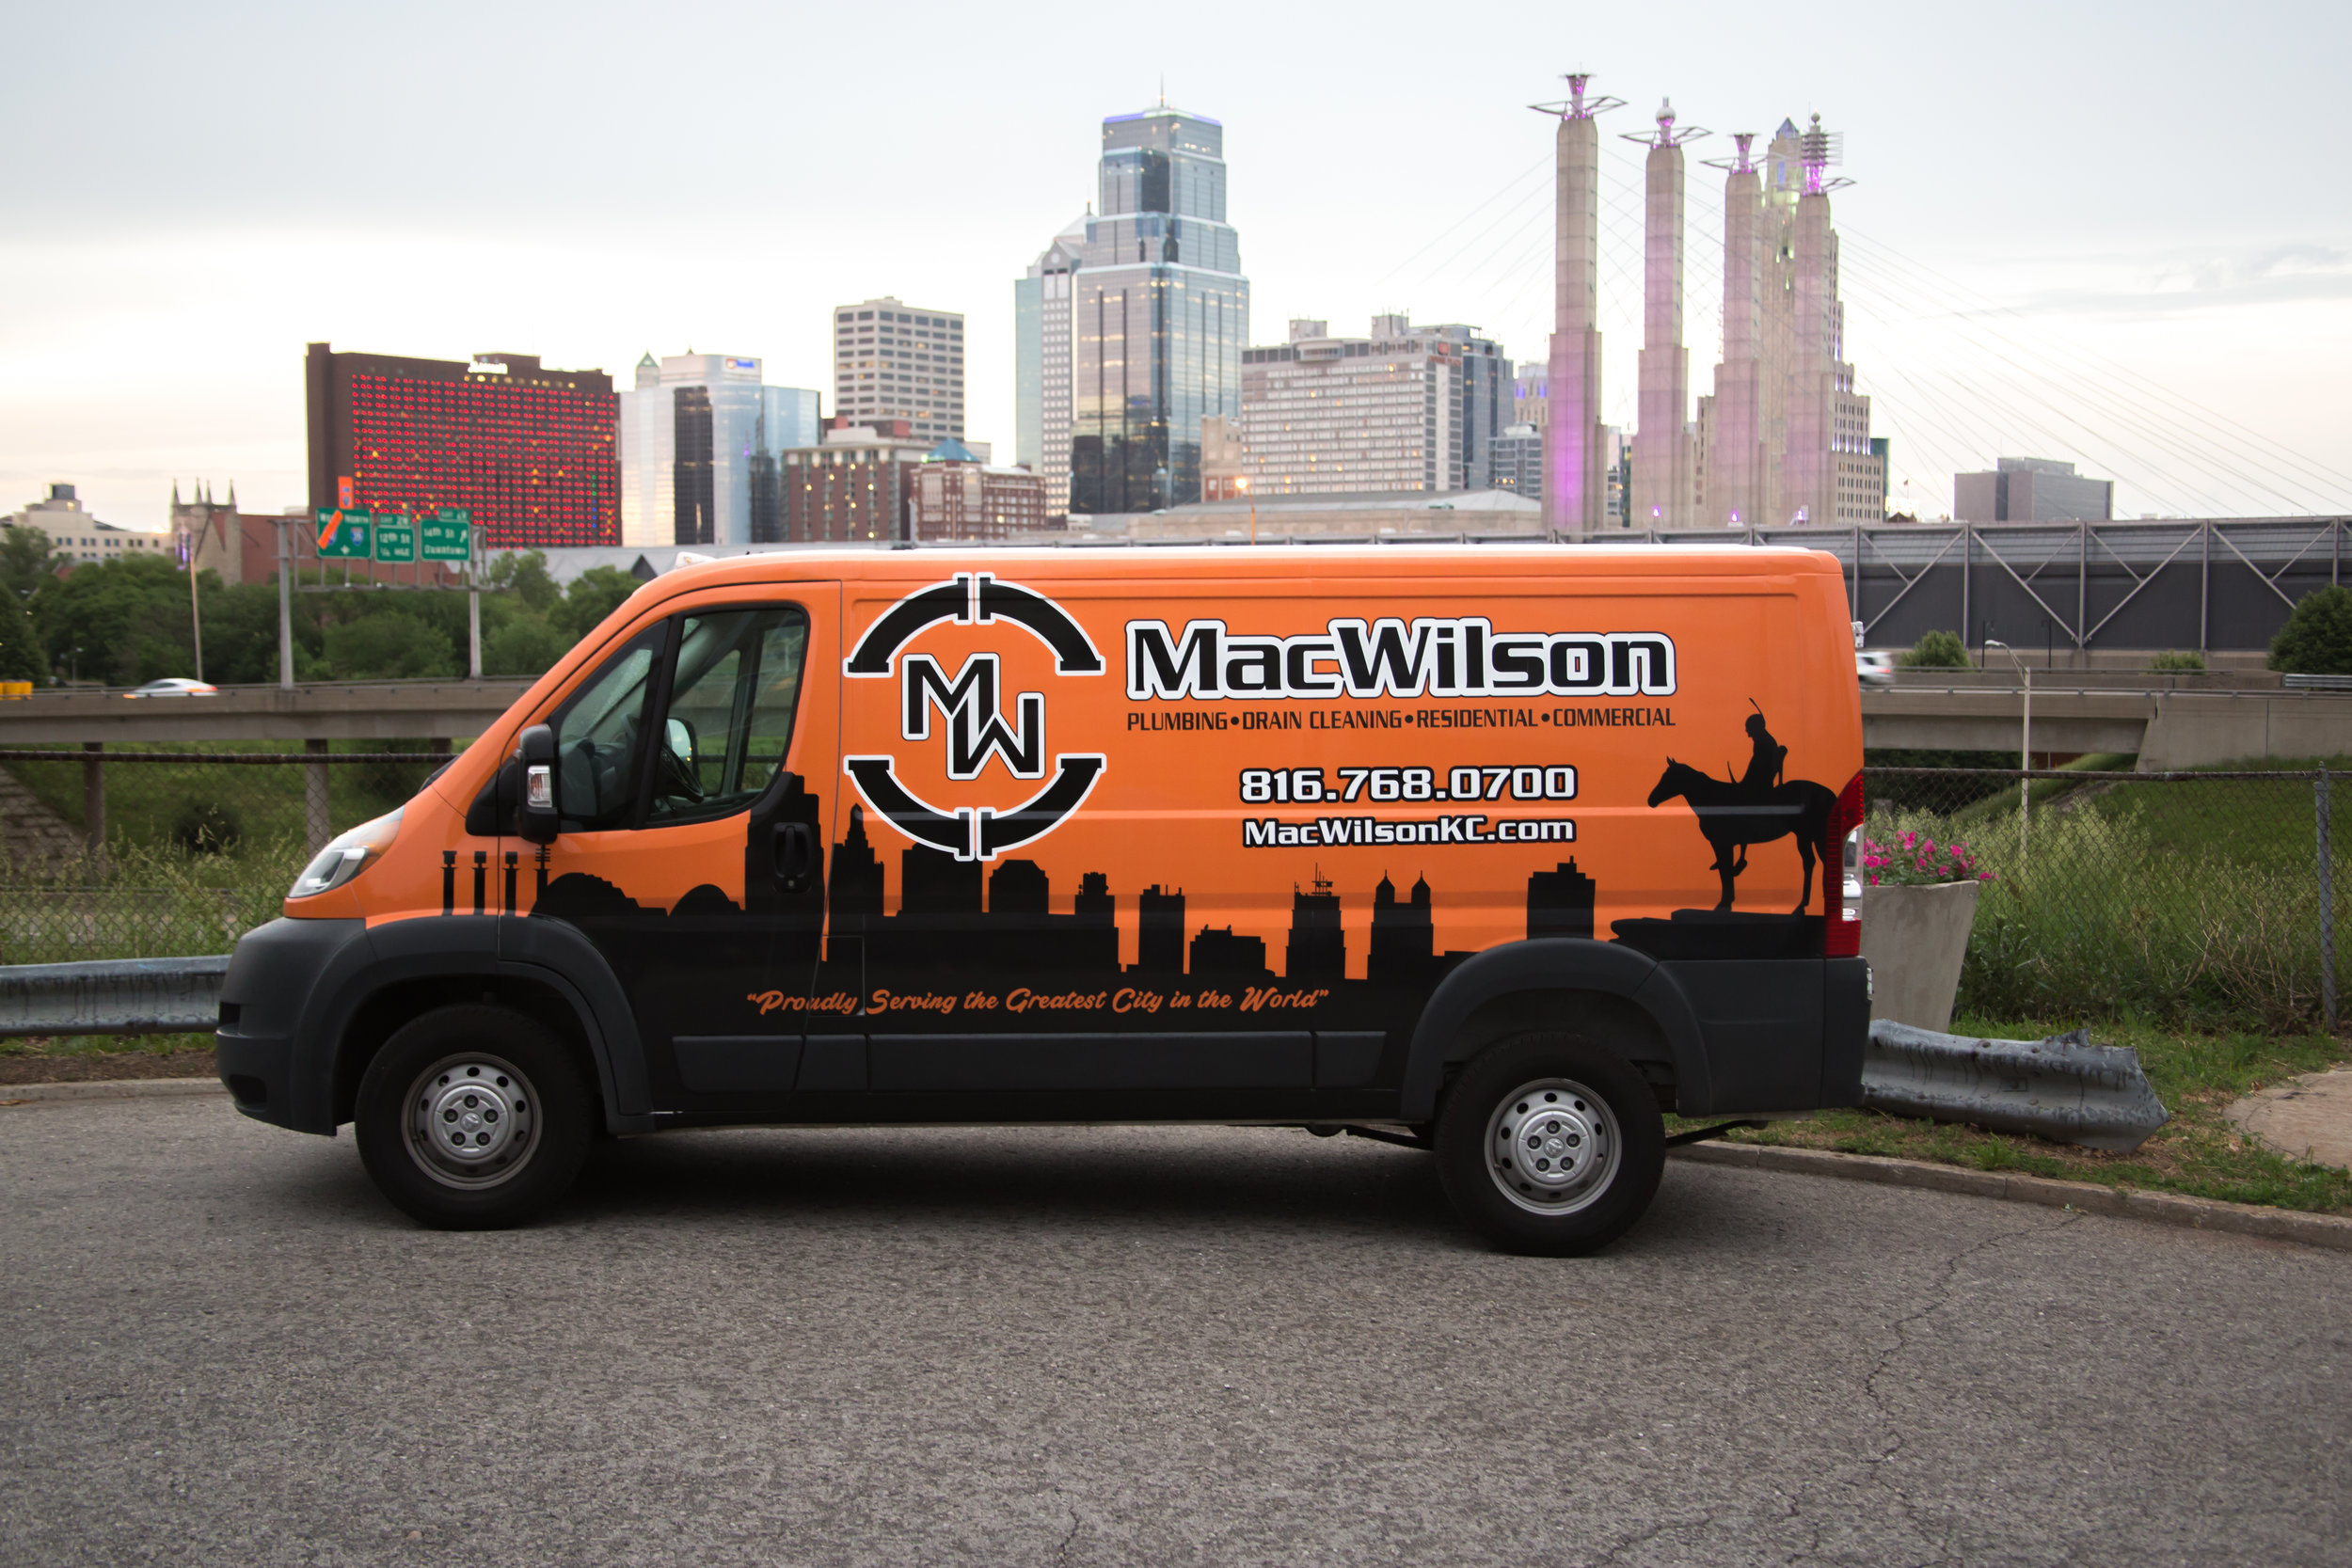 Mac Wilson Plumbing LLC - Kansas City, Missouri Company